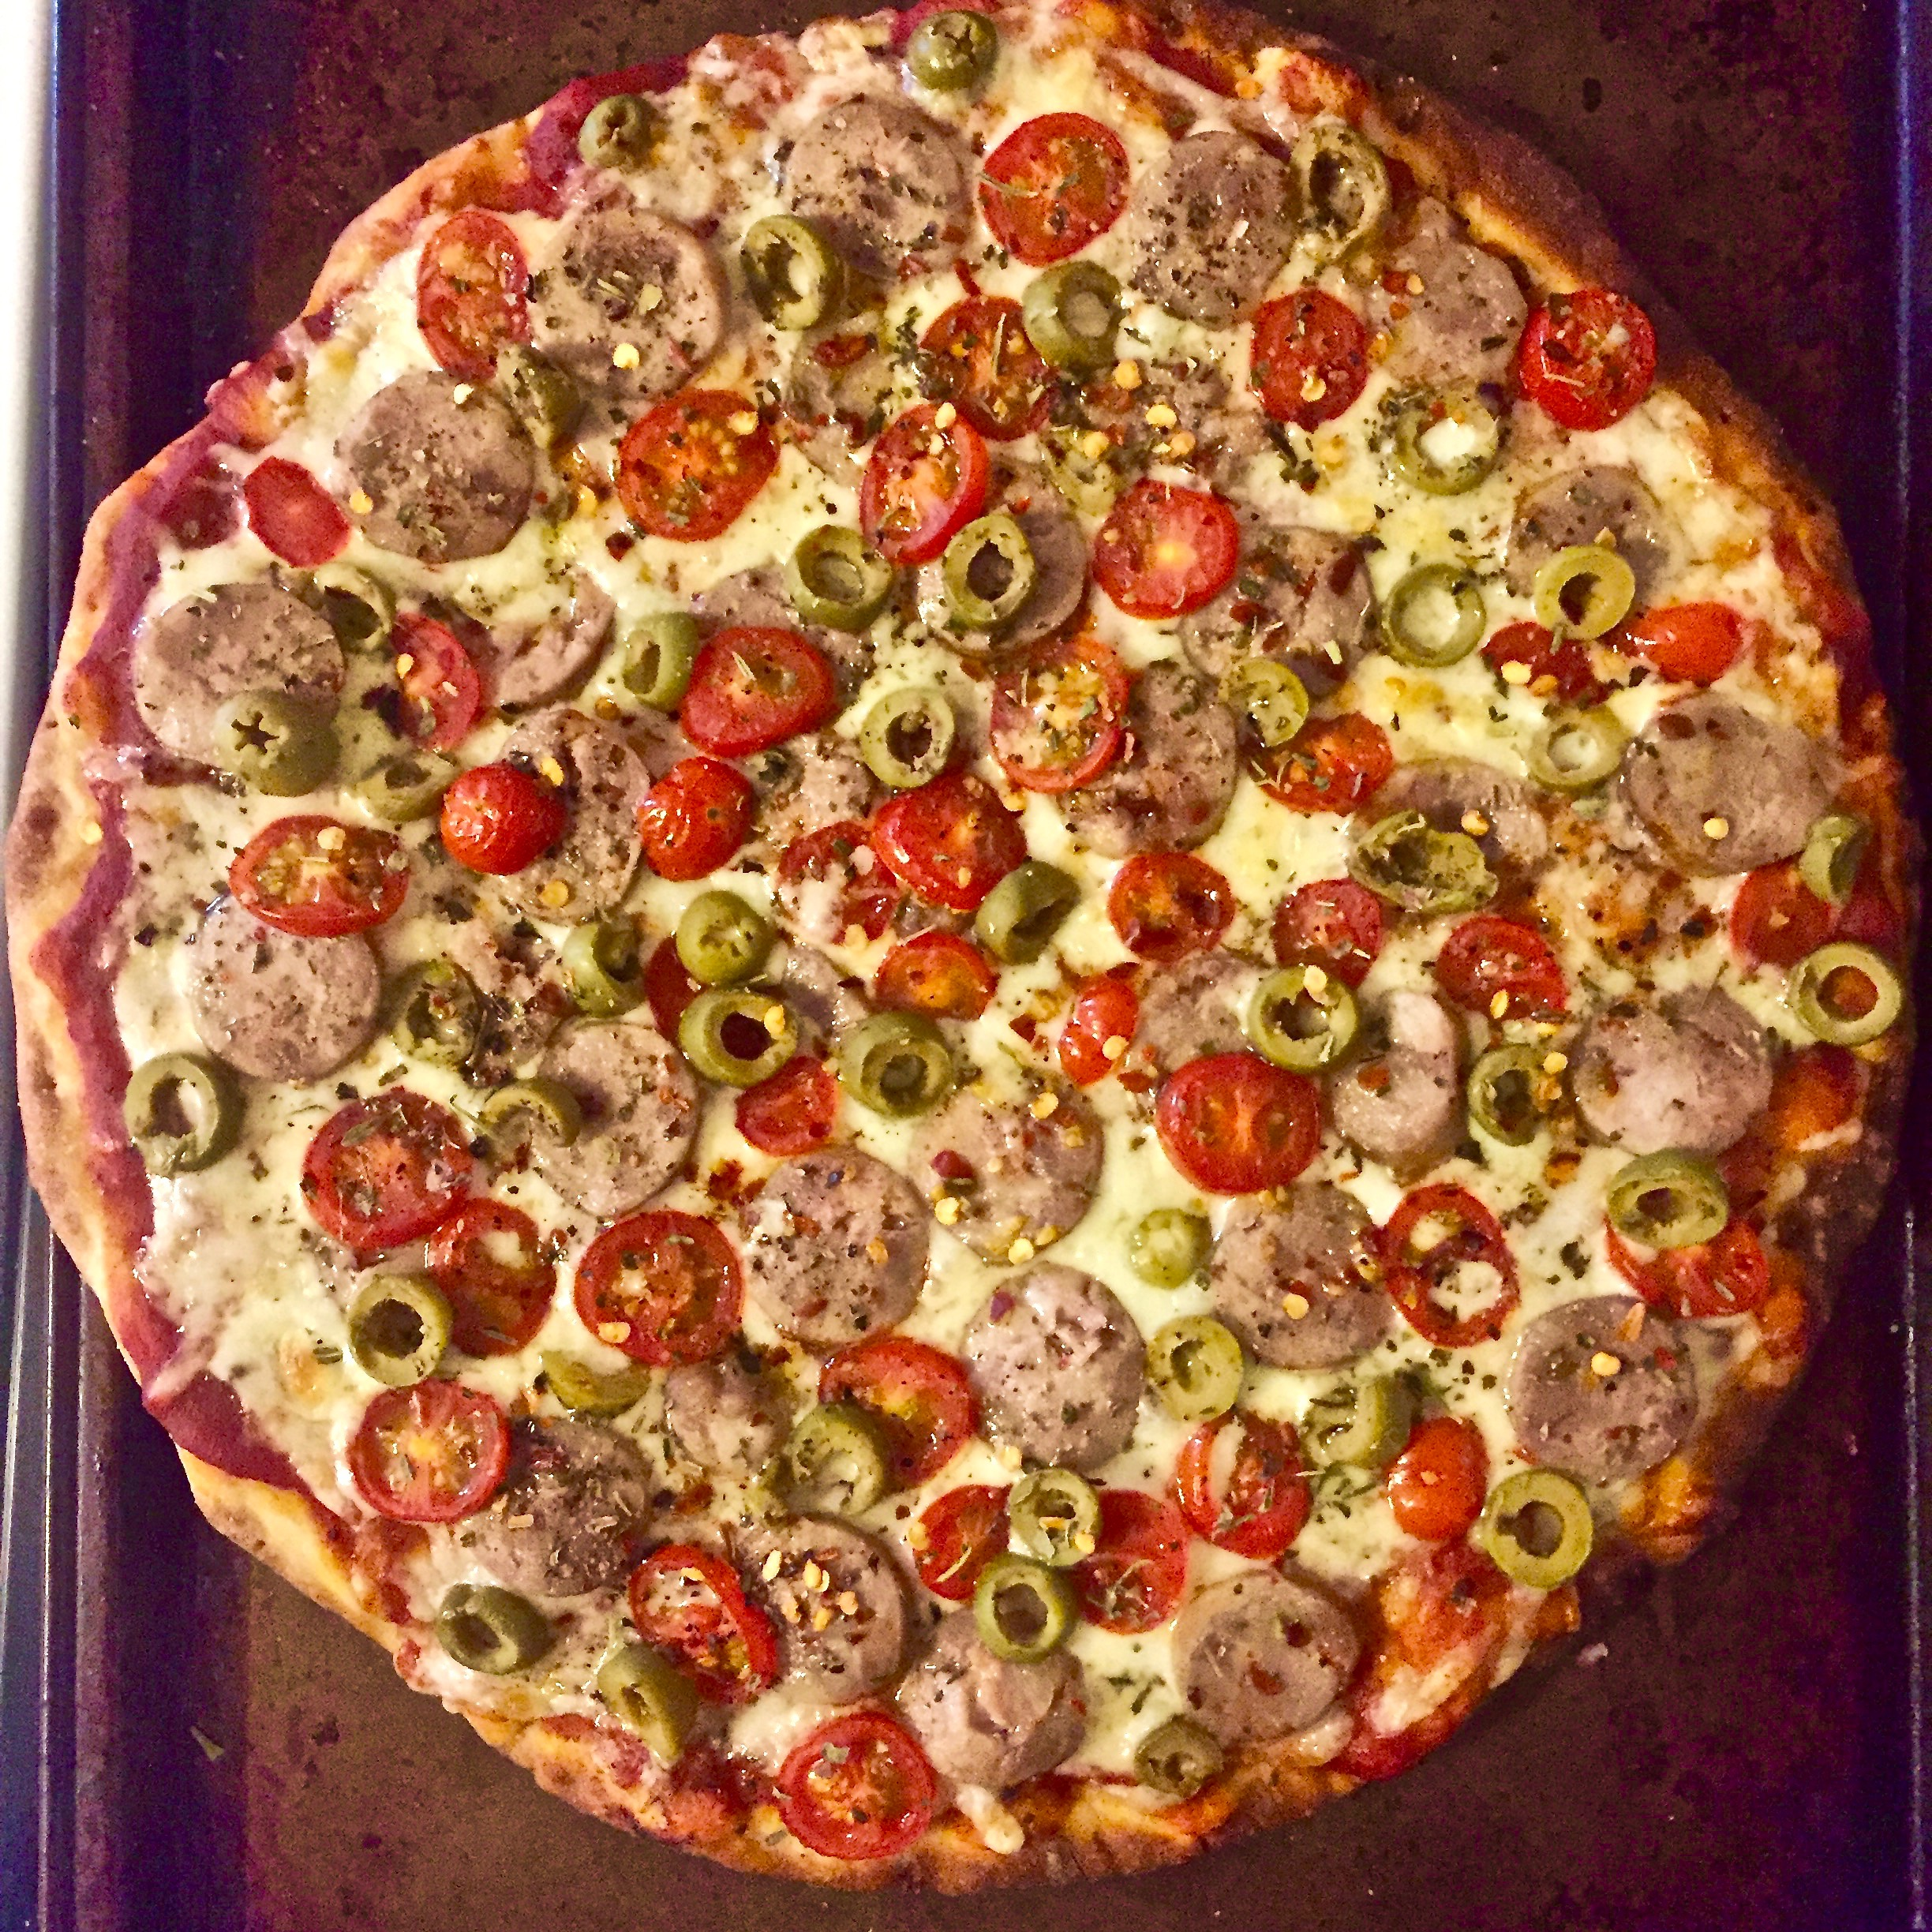 Italian sausage, green olives, grape tomatoes, and a   proprietary blend of herbs and seasoning